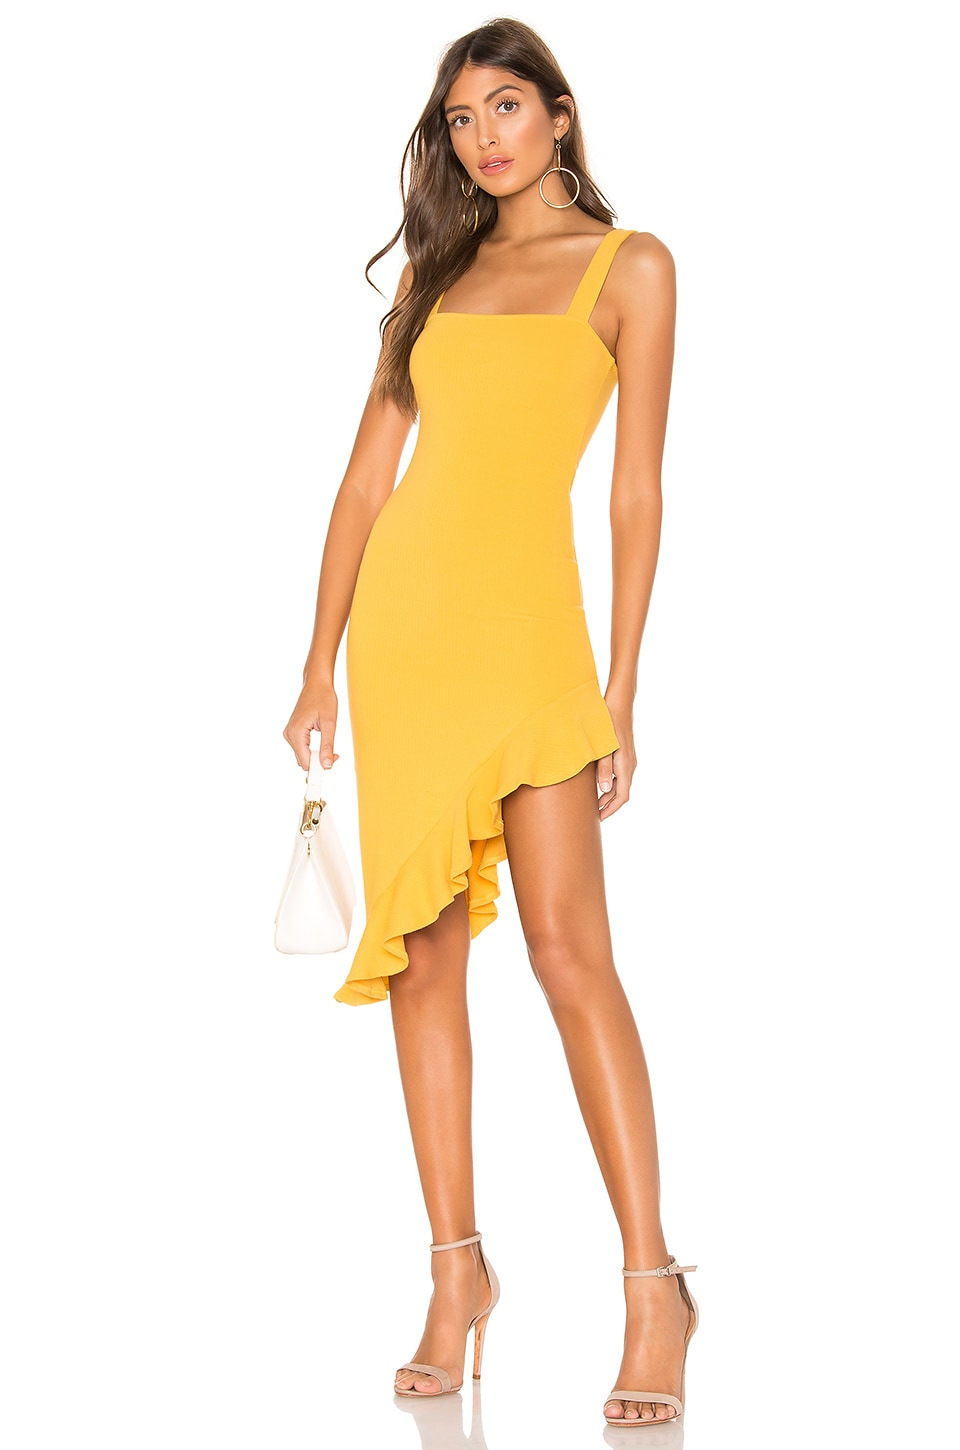 Privacy Please Giselle Midi Dress in Yellow